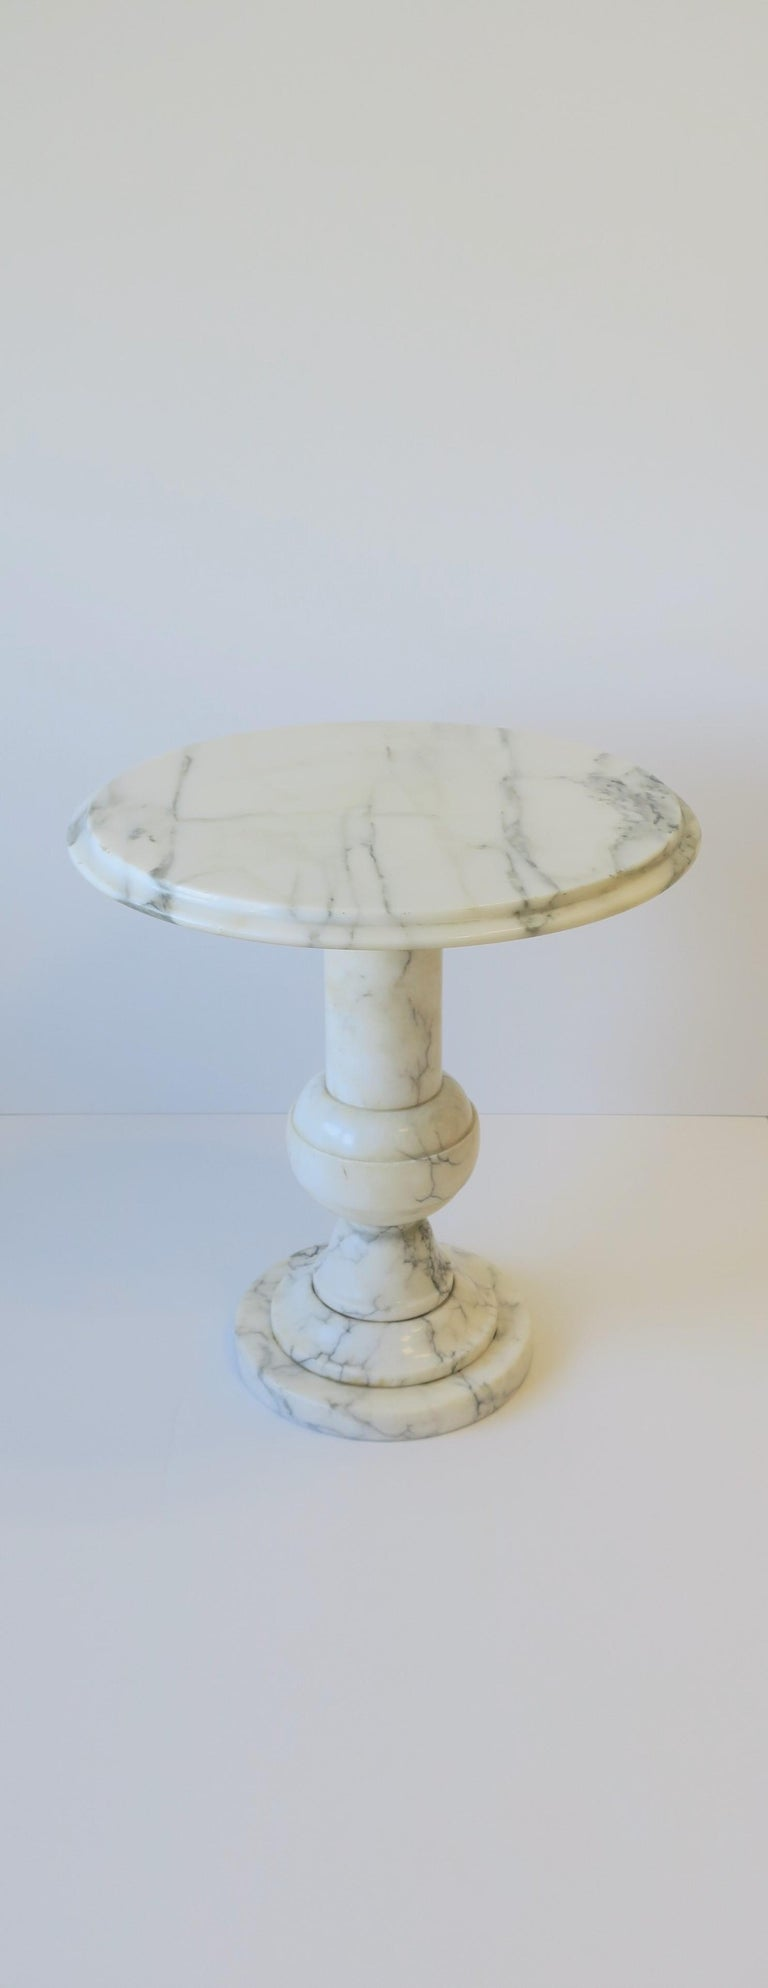 Polished Italian Modern Round White and Black Marble Side Table For Sale